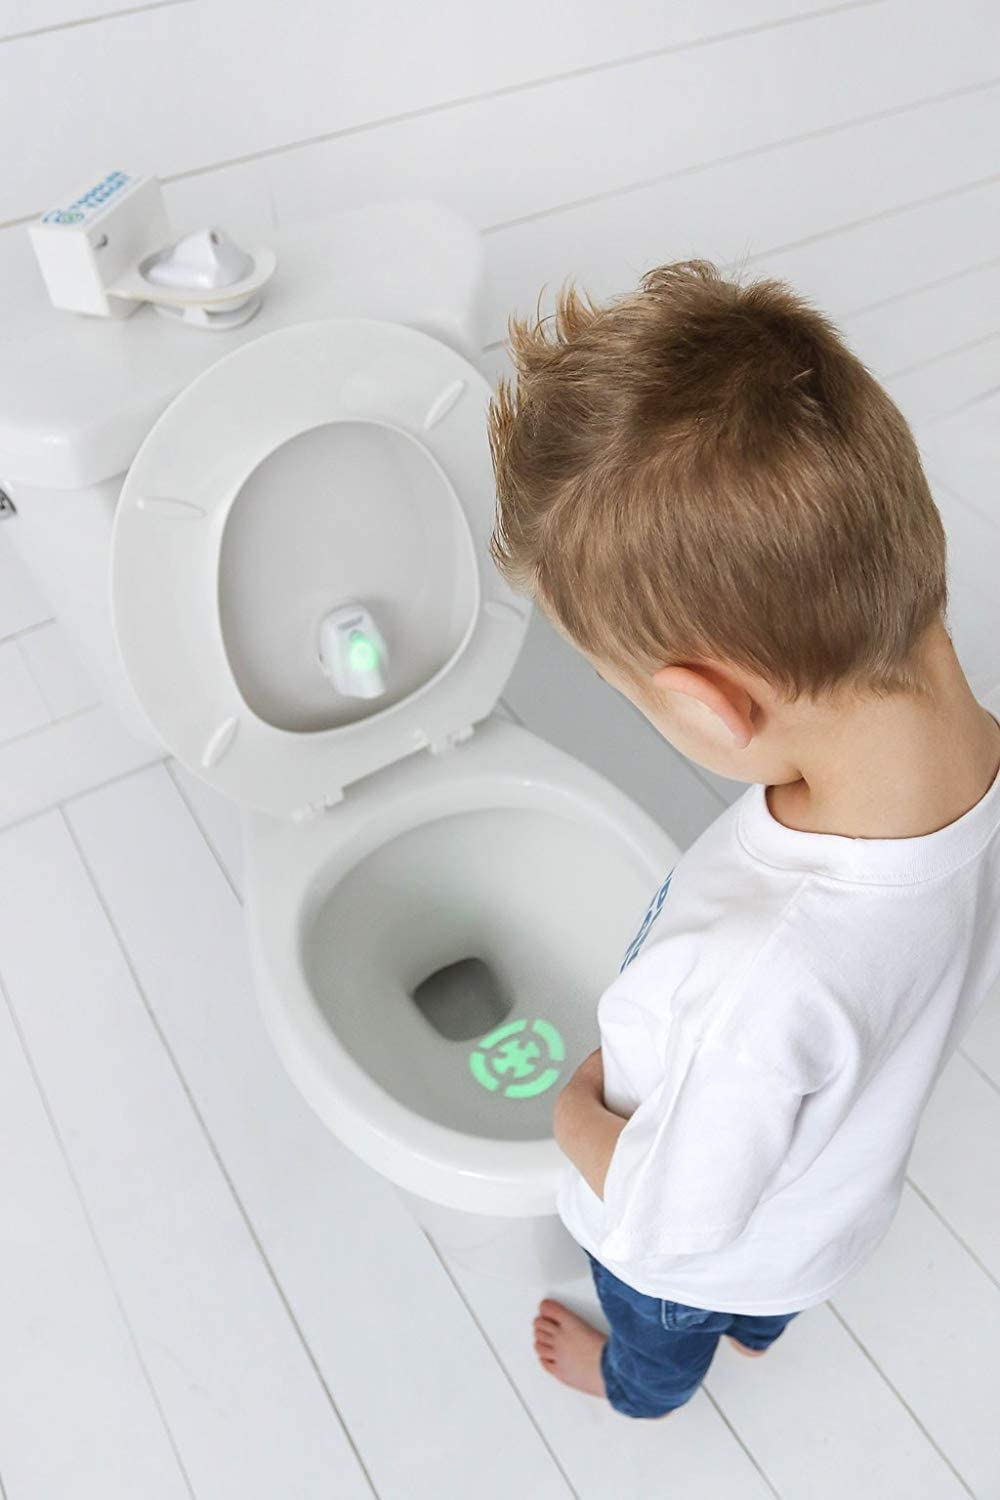 Toddler Toilet Target Night Light,Training Learning Easy Fast Fun Motion Sensor Activated Bullseye NIghtlight white